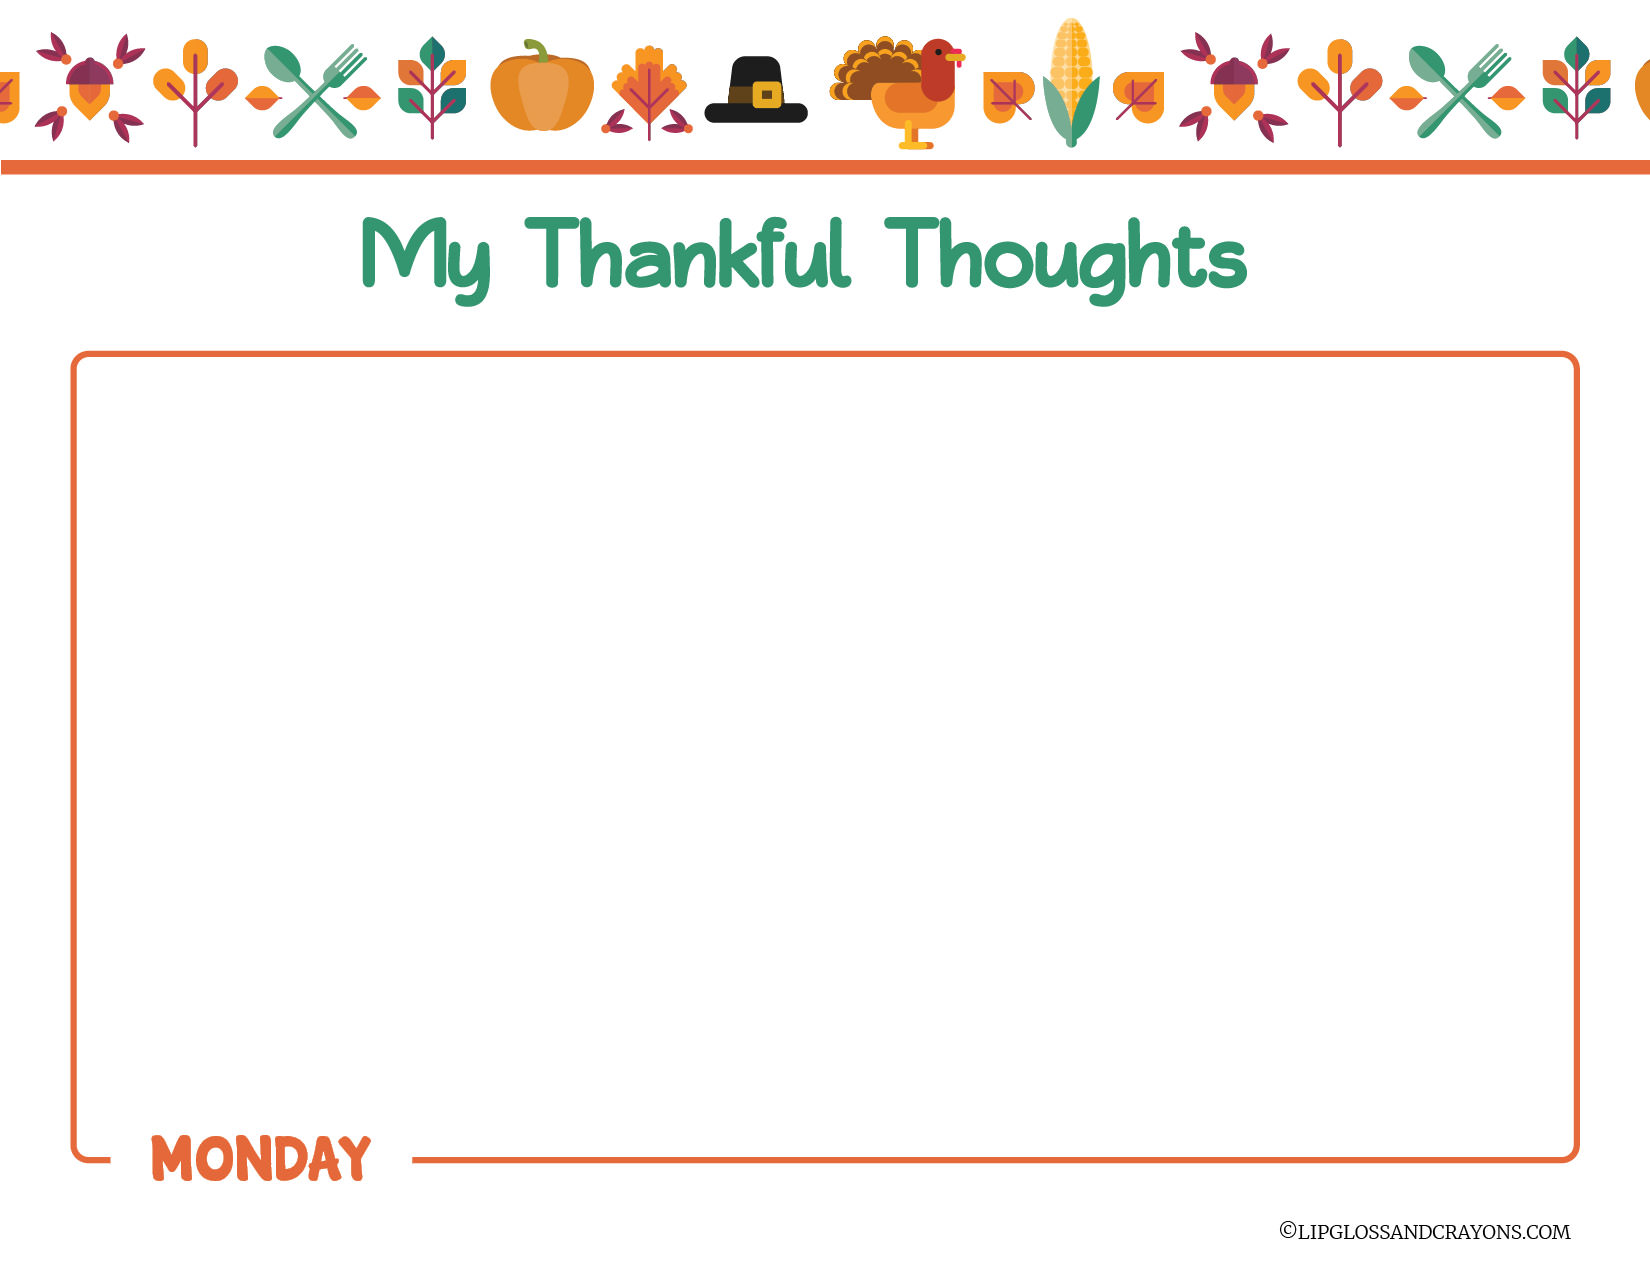 These Thanksgiving Family Activities are perfect ways to help your children share what they are thankful for!